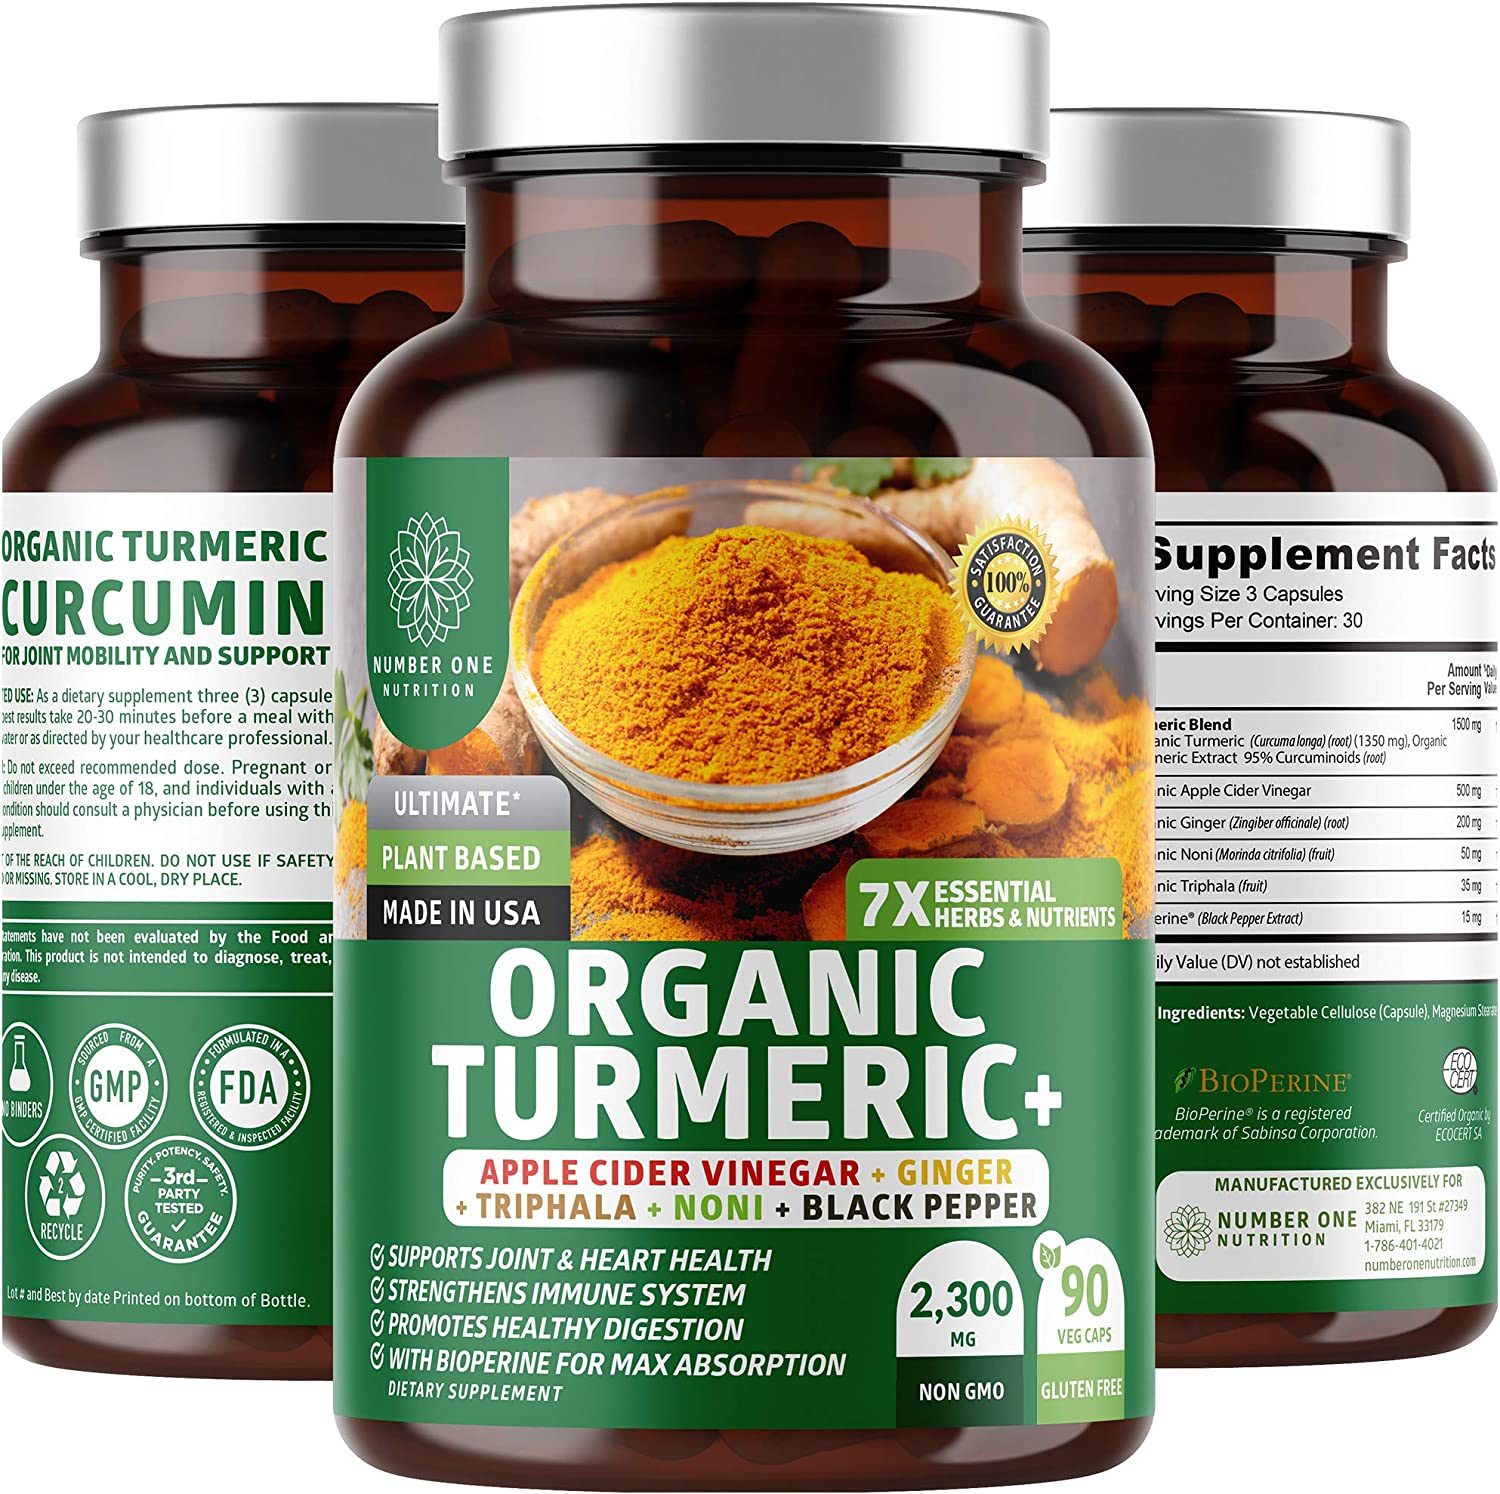 N1N Premium Turmeric Curcumin with BioPerine [Max Absorption, 2300mg] Organic Turmeric Capsules with 95% Curcuminoids, Ginger, Apple Cider Vinegar for Pain Relief, Joint & Digestion Support, 90 Caps